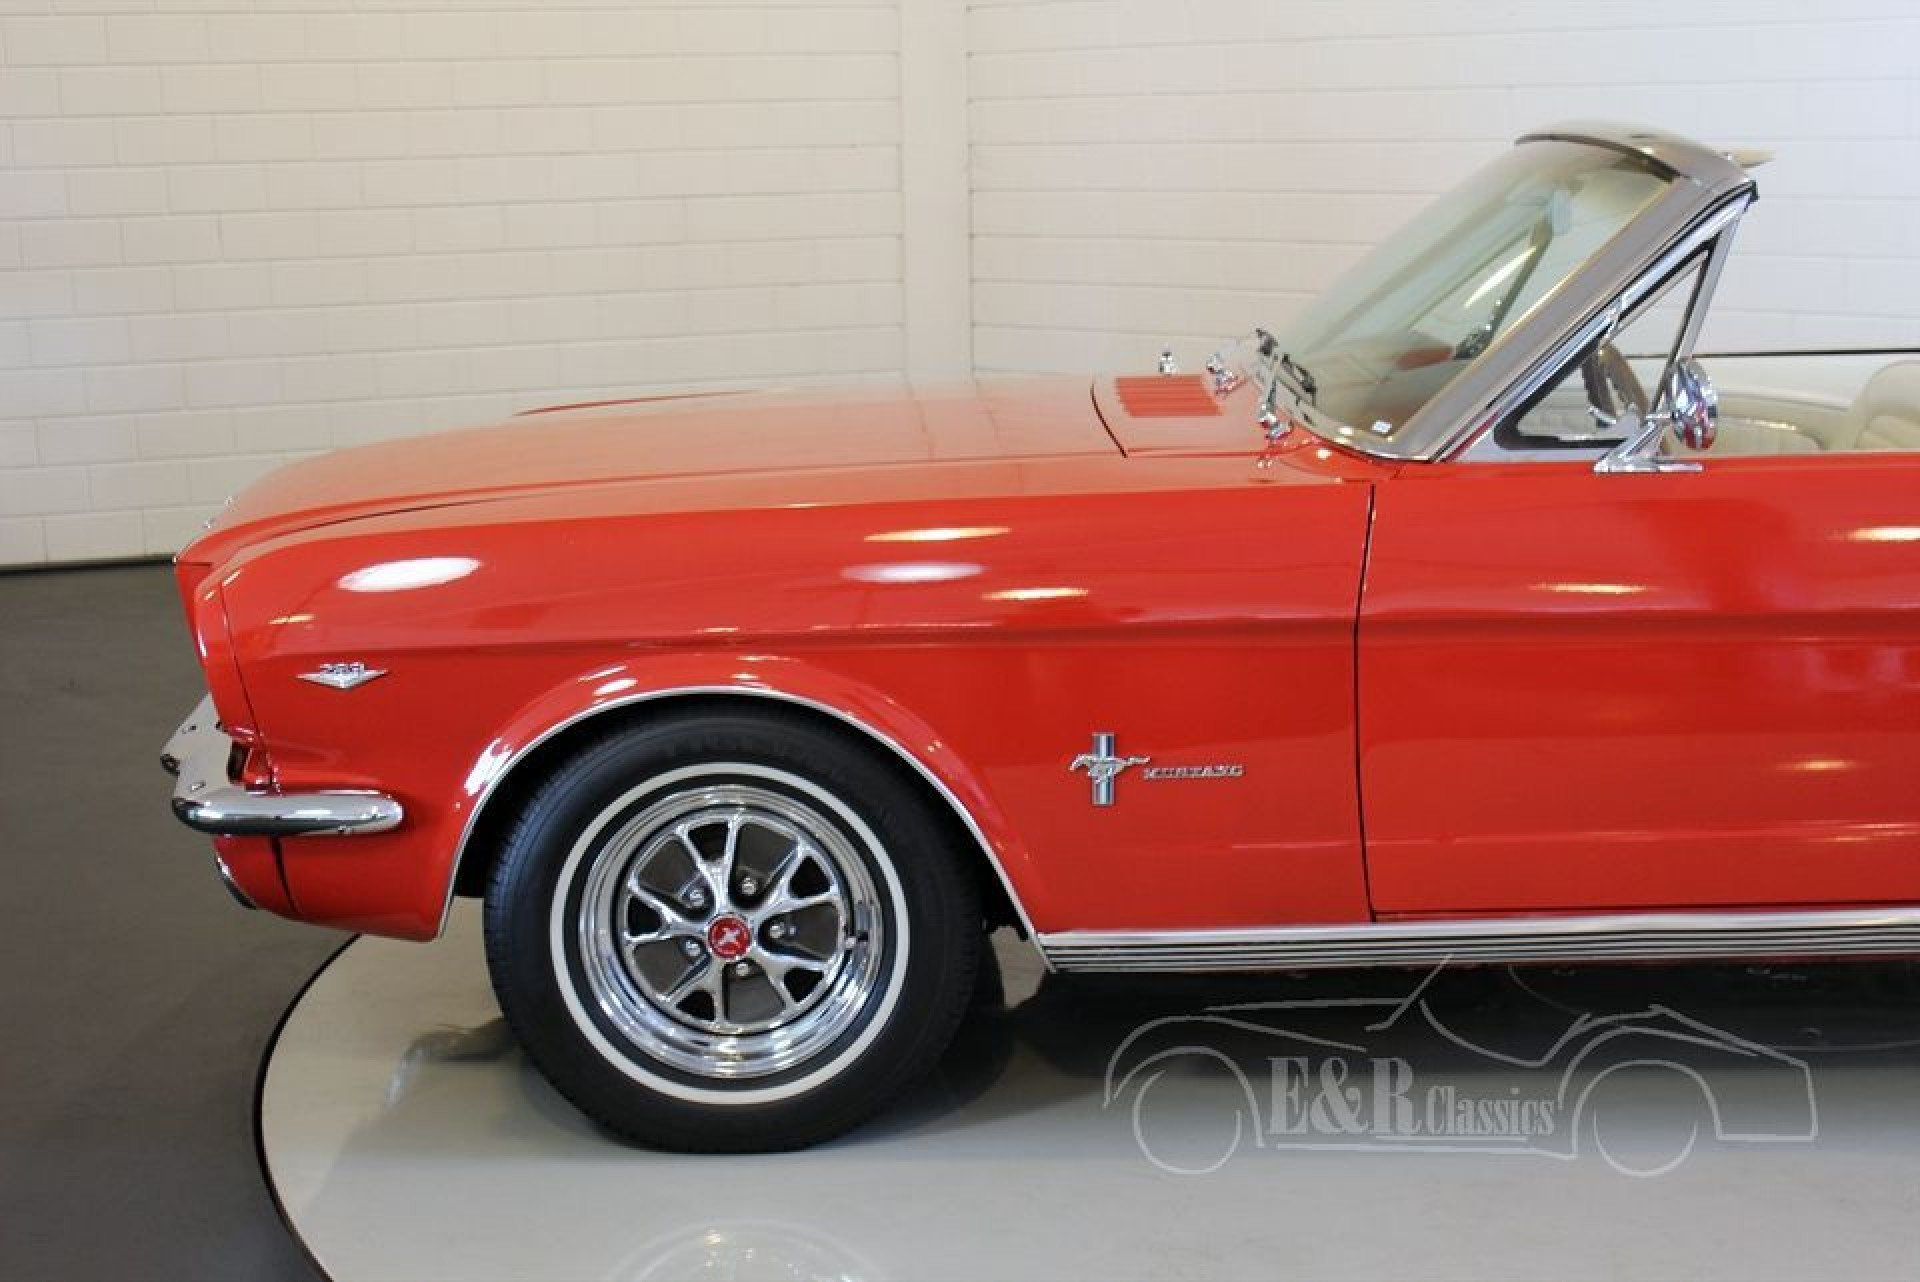 ford mustang convertible v8 1965 for sale at erclassics. Black Bedroom Furniture Sets. Home Design Ideas